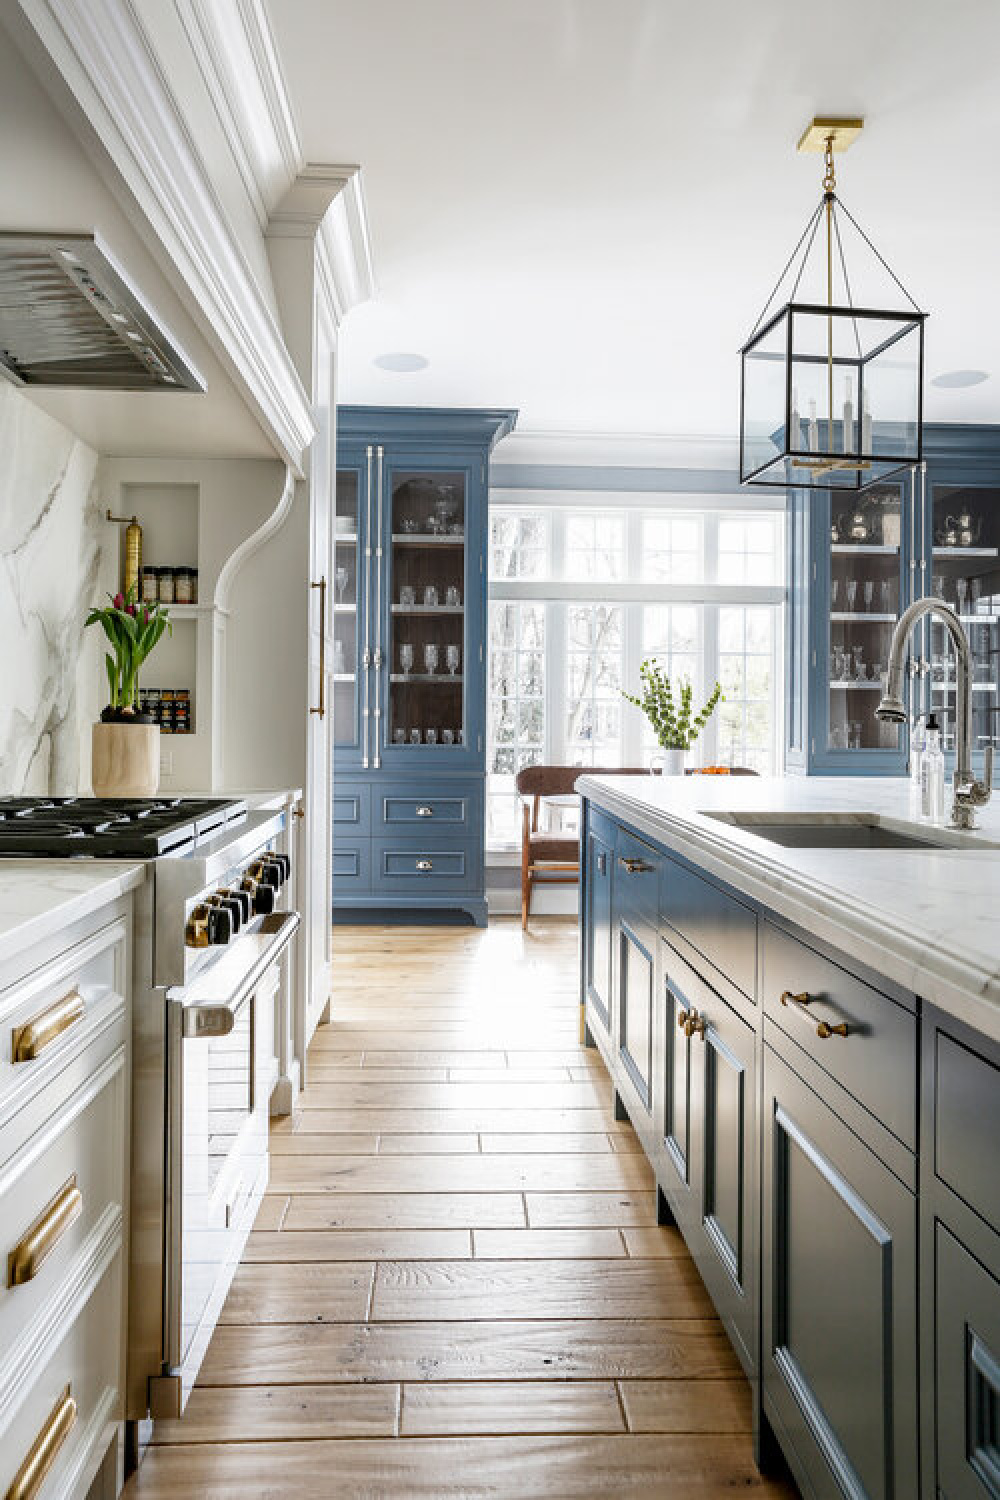 Classic blue kitchen ideas with traditional architecture, custom millwork, and sophisticated design - Edward Deegan Architects. #bluekitchens #traditionalkithens #classicbluekitchen